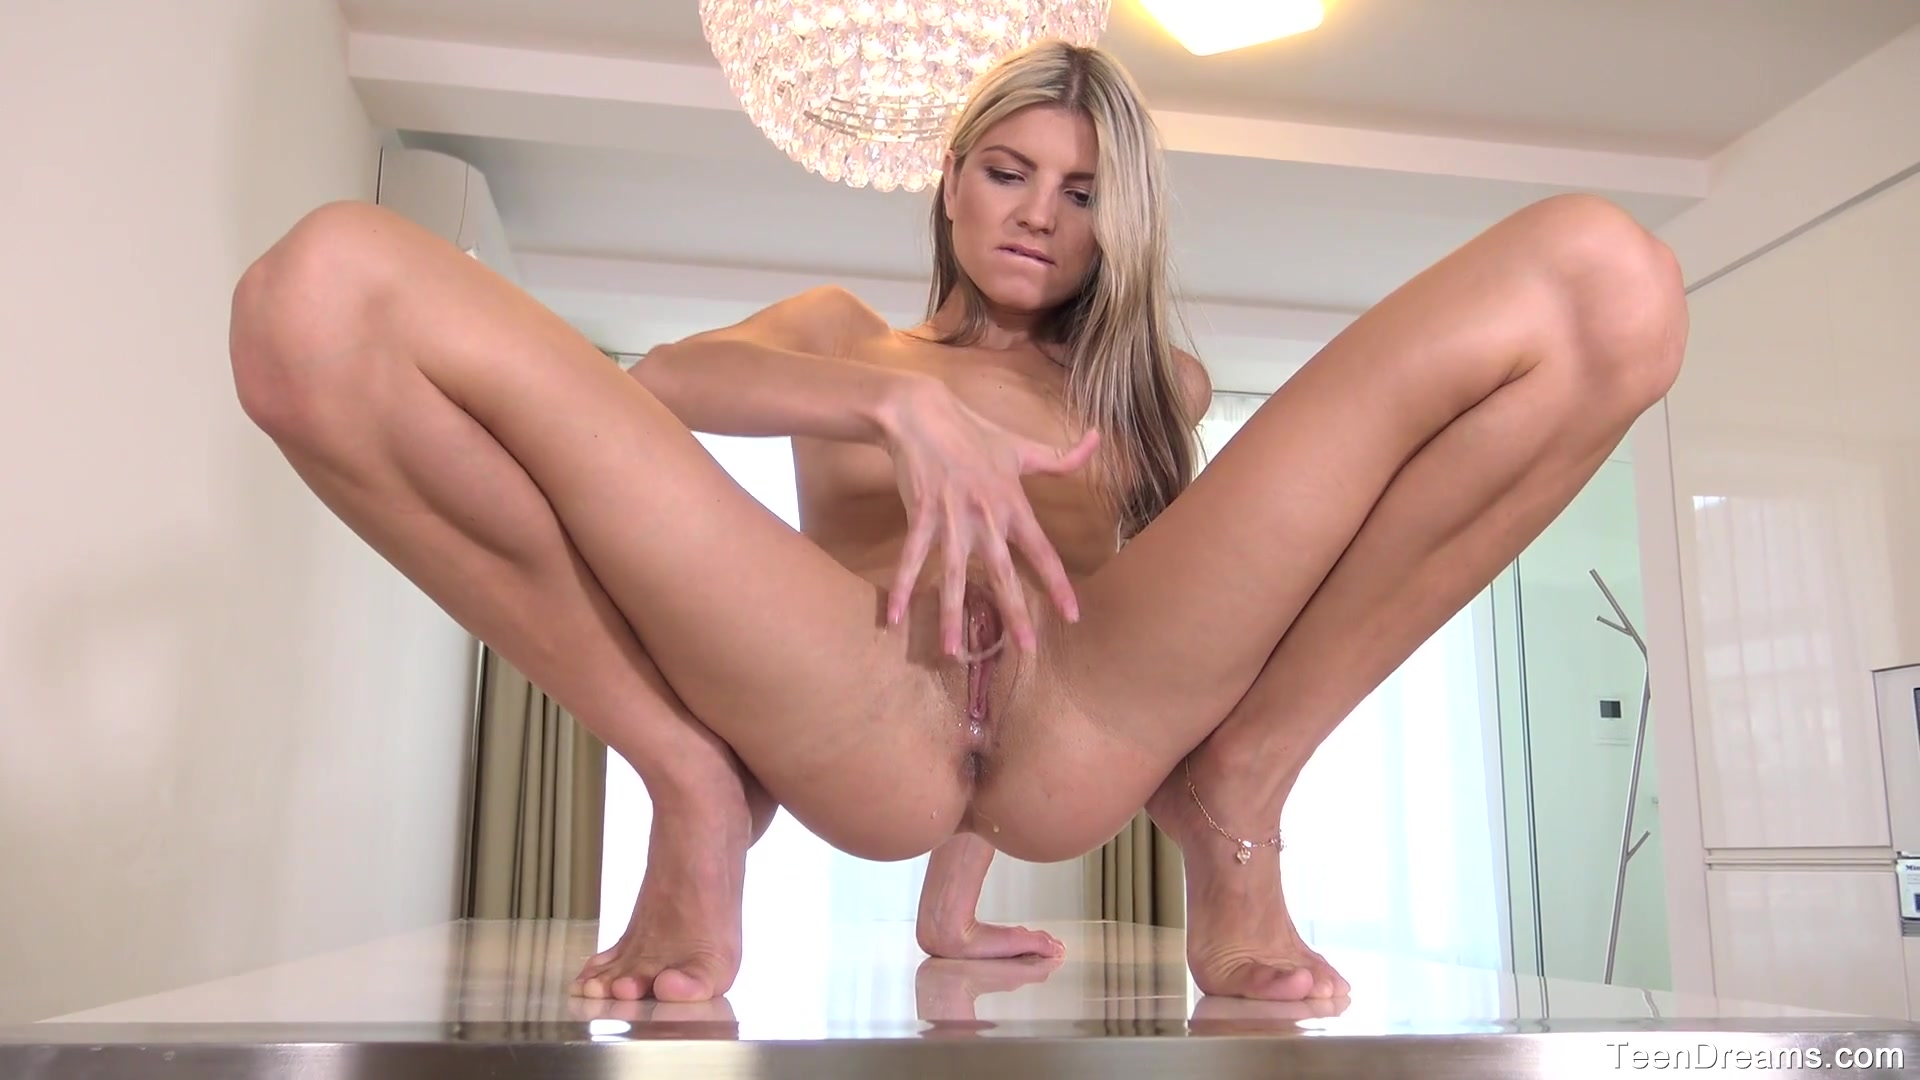 Teendreams Gina Gerson Vsex